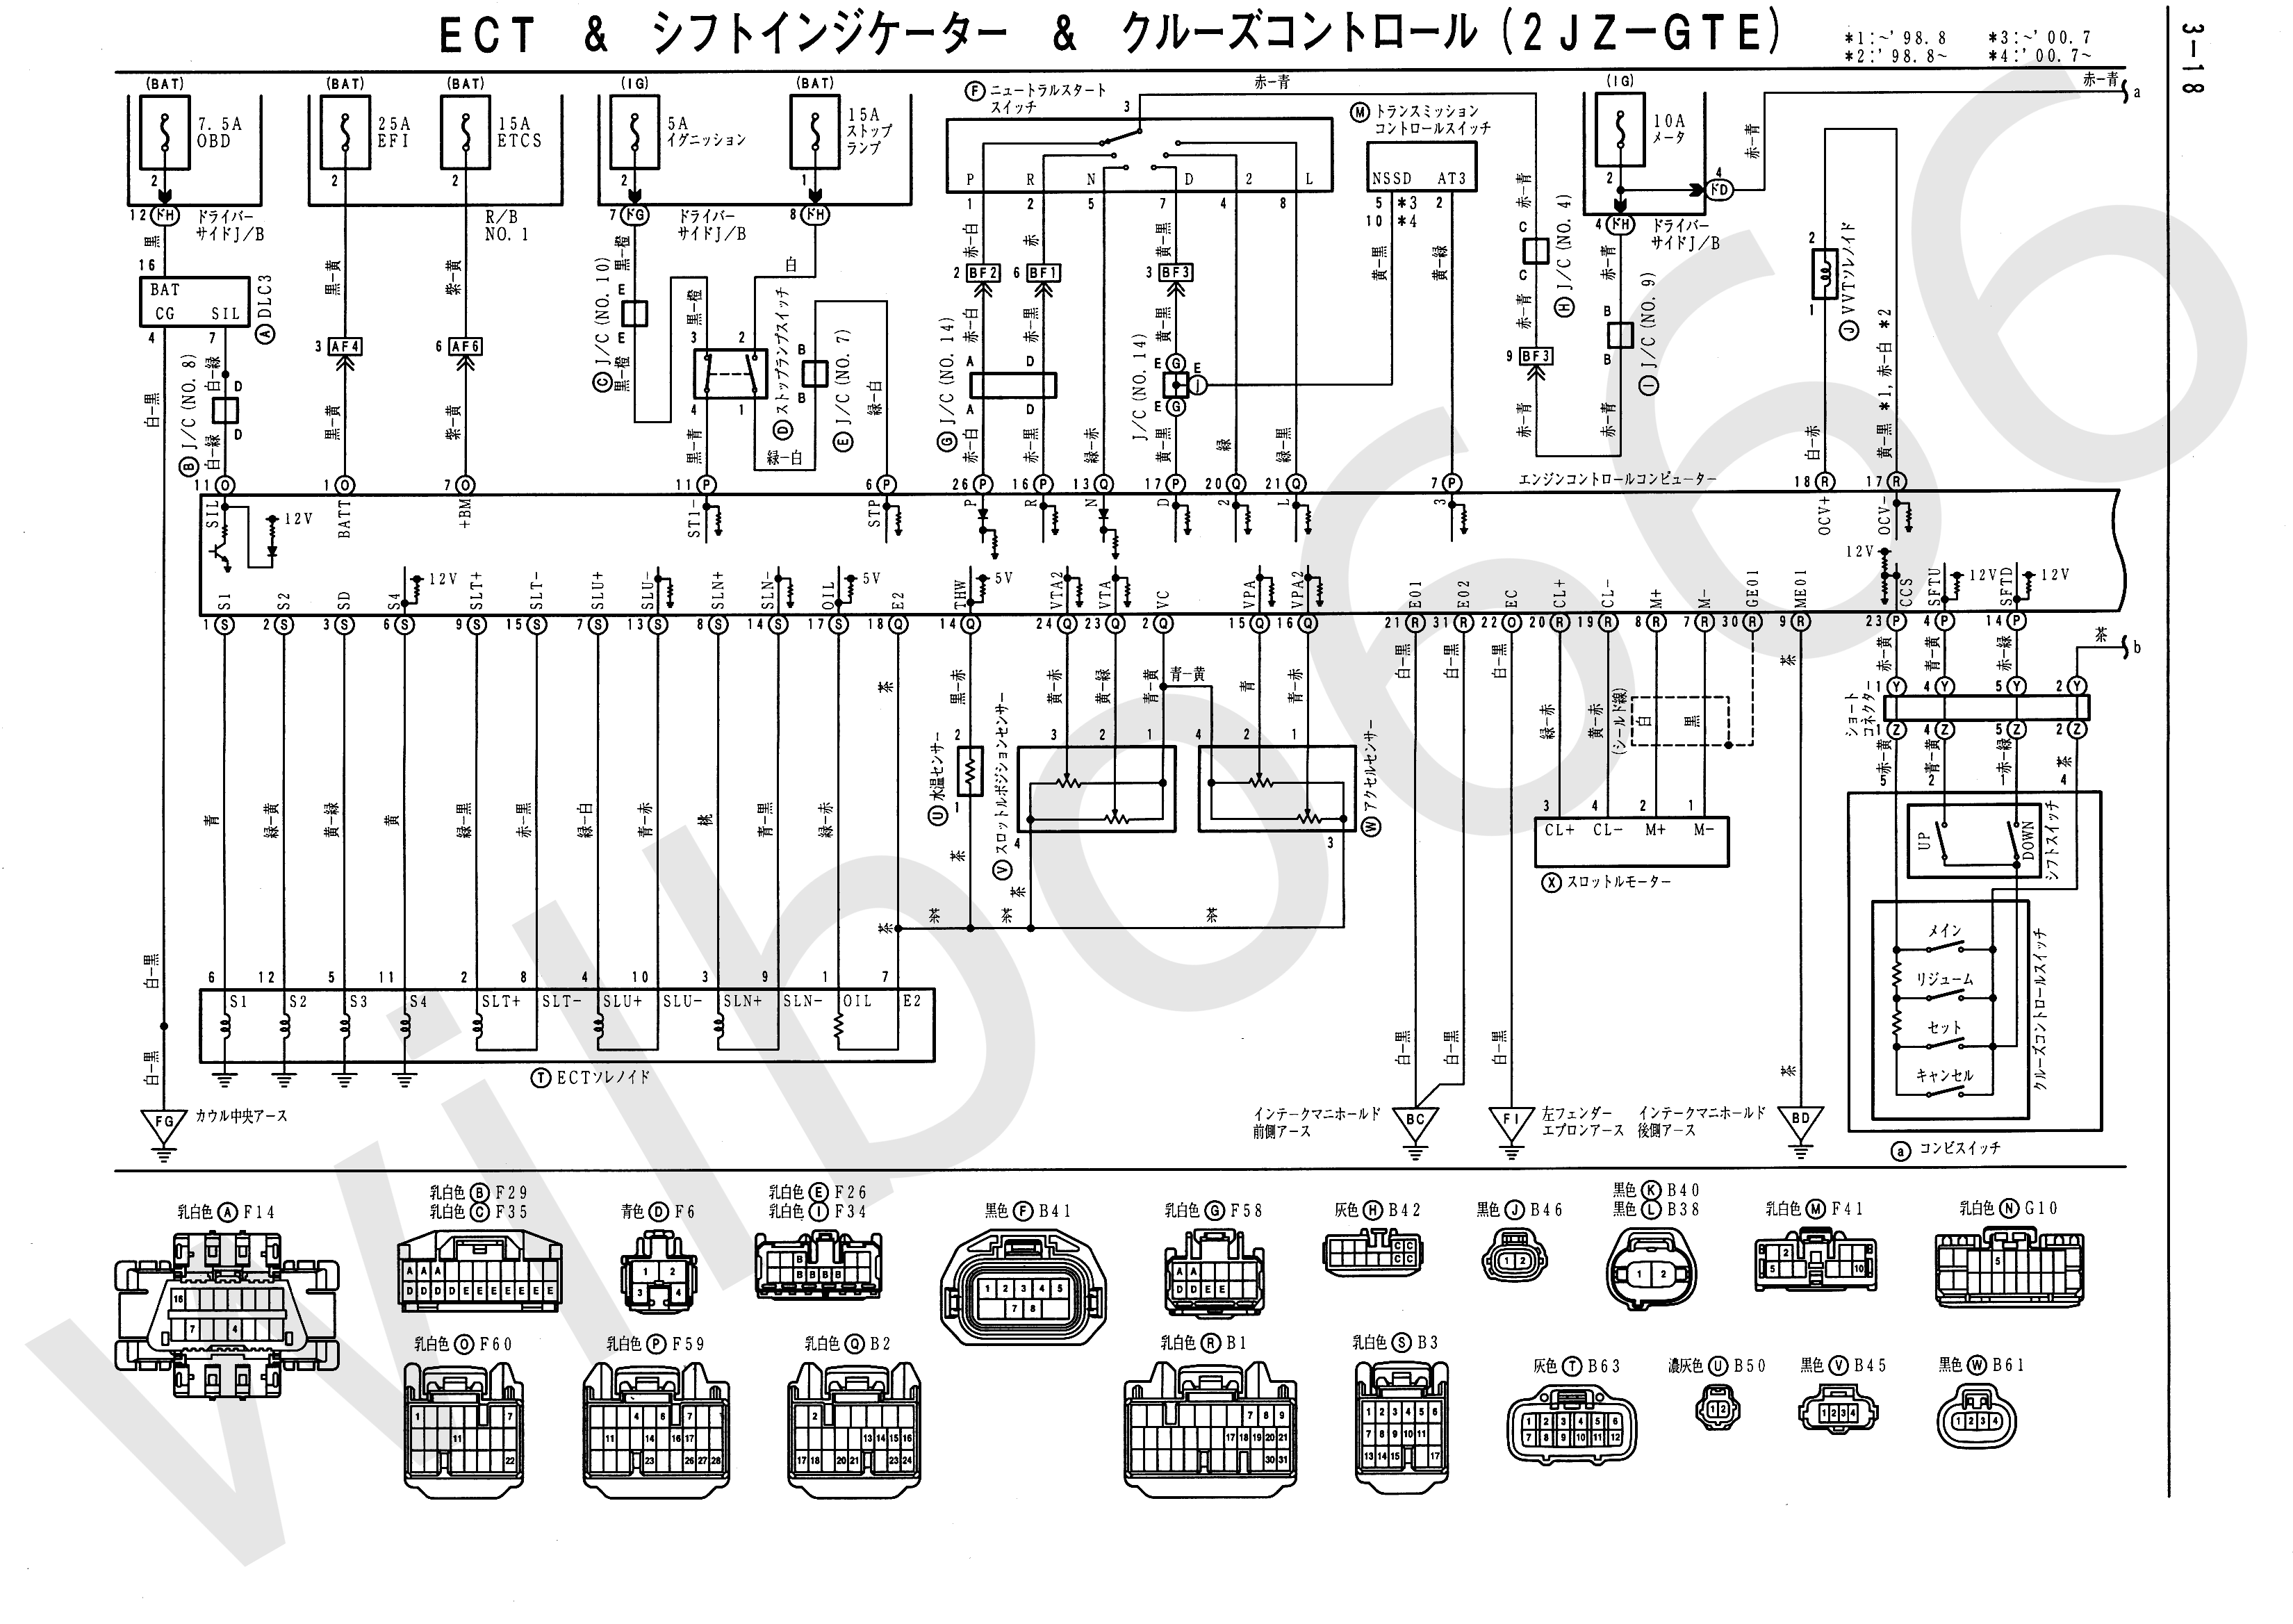 JZS161 Electrical Wiring Diagram 6748505 3 18 wilbo666 2jz gte vvti jzs161 aristo engine wiring 2jz wiring diagram at cita.asia